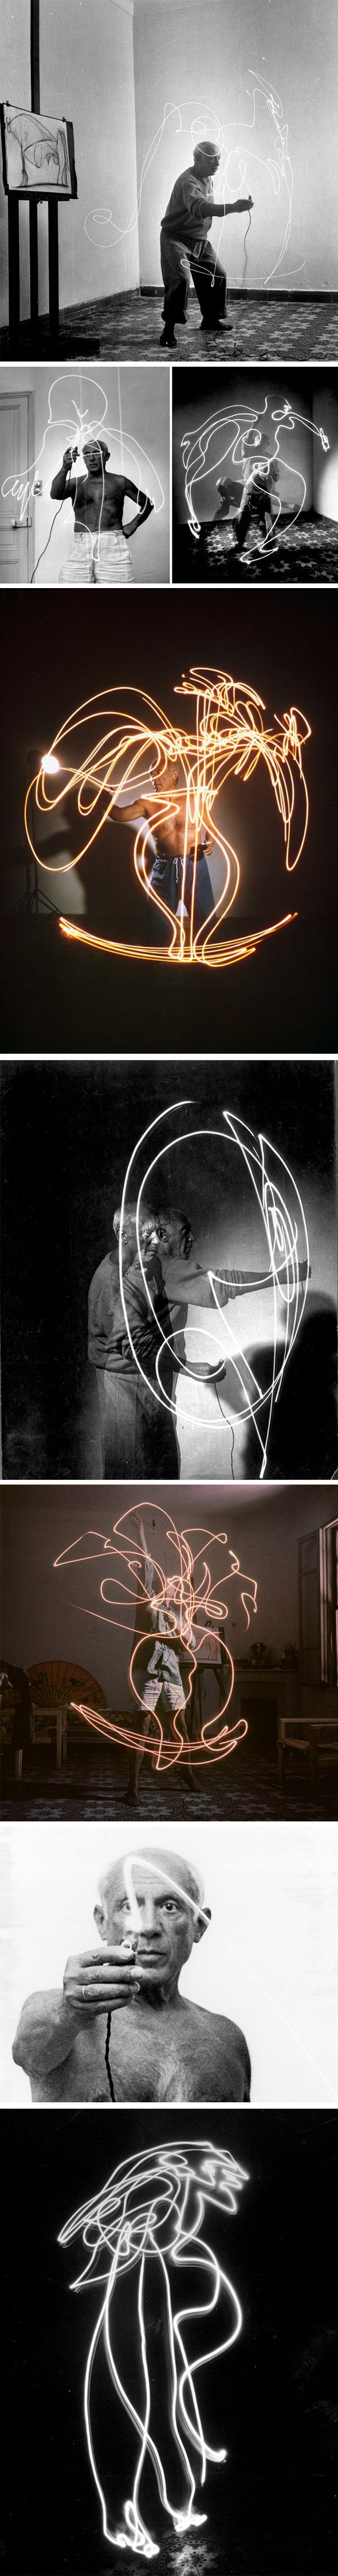 Light-Drawings-Pablo-Picasso #Art #LightArt #Lighting